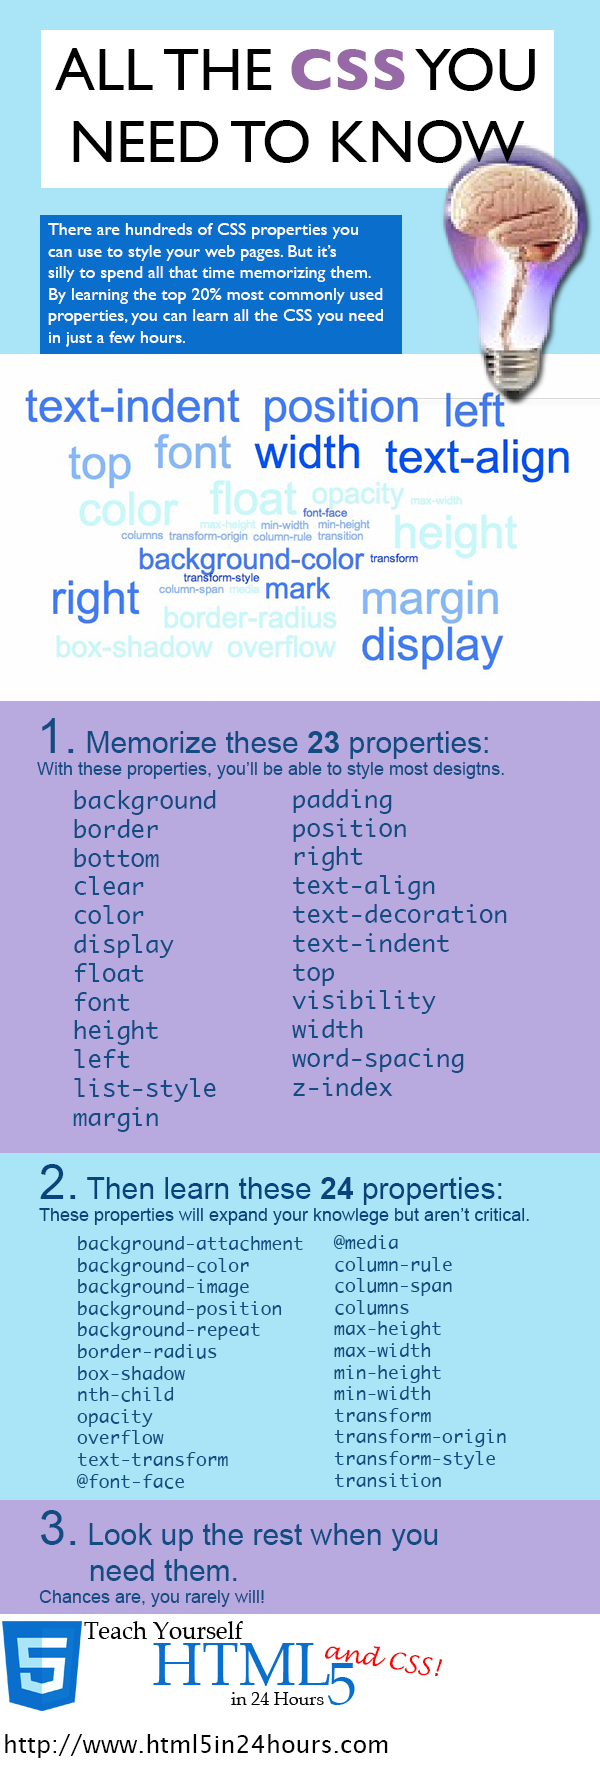 All the CSS You Need to Know